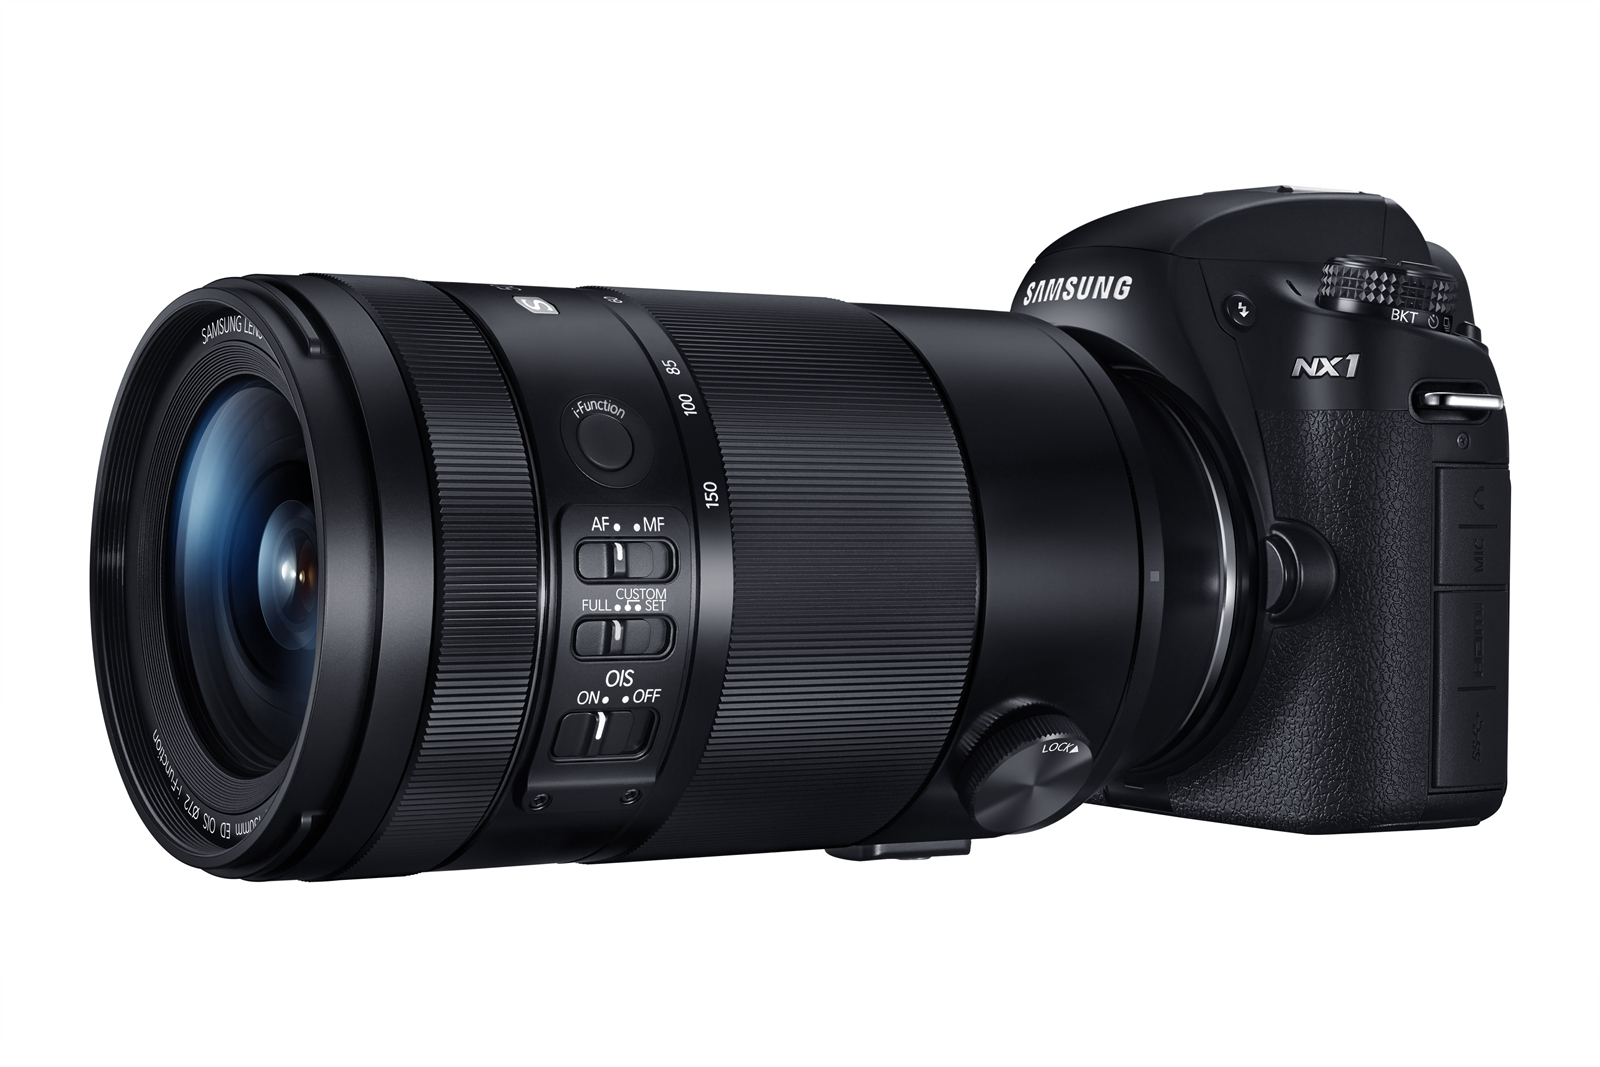 The Samsung NX1 and 50-150mm f2.8 lens